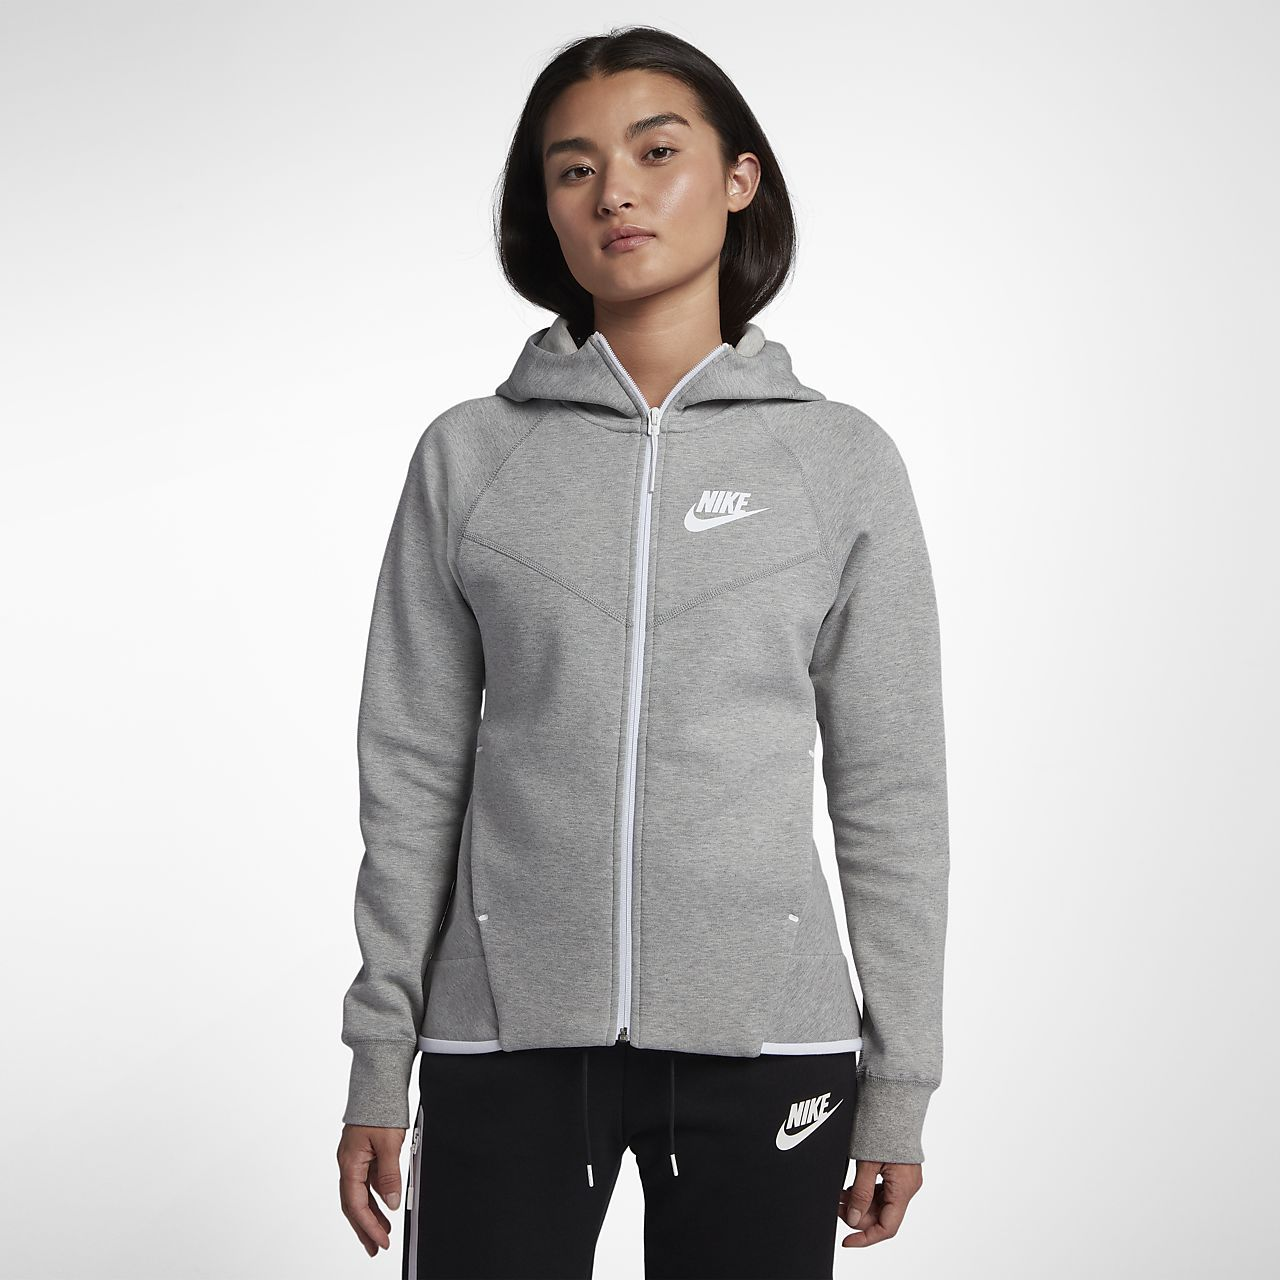 Nike Sportswear Tech Fleece Windrunner Women's FullZip